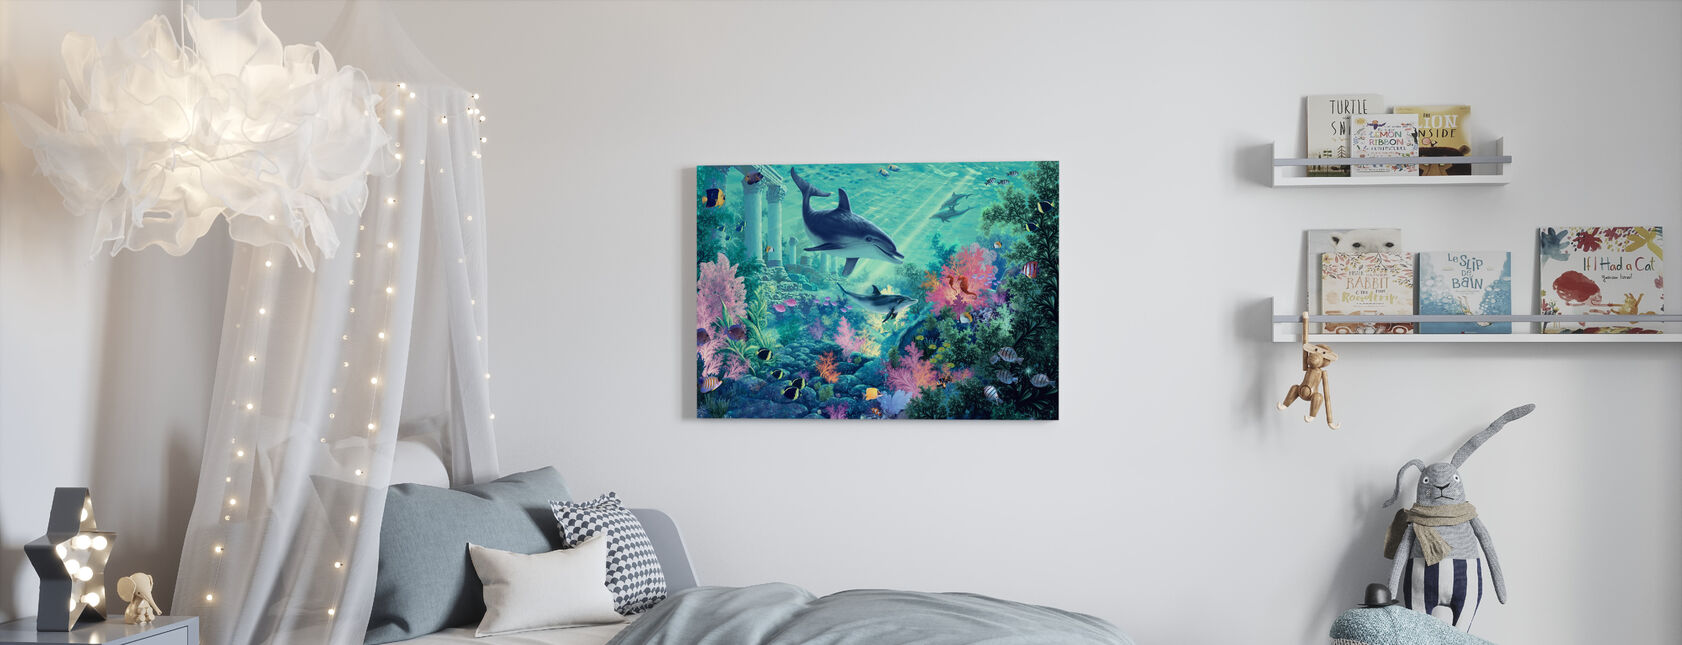 Early Exploration - Canvas print - Kids Room